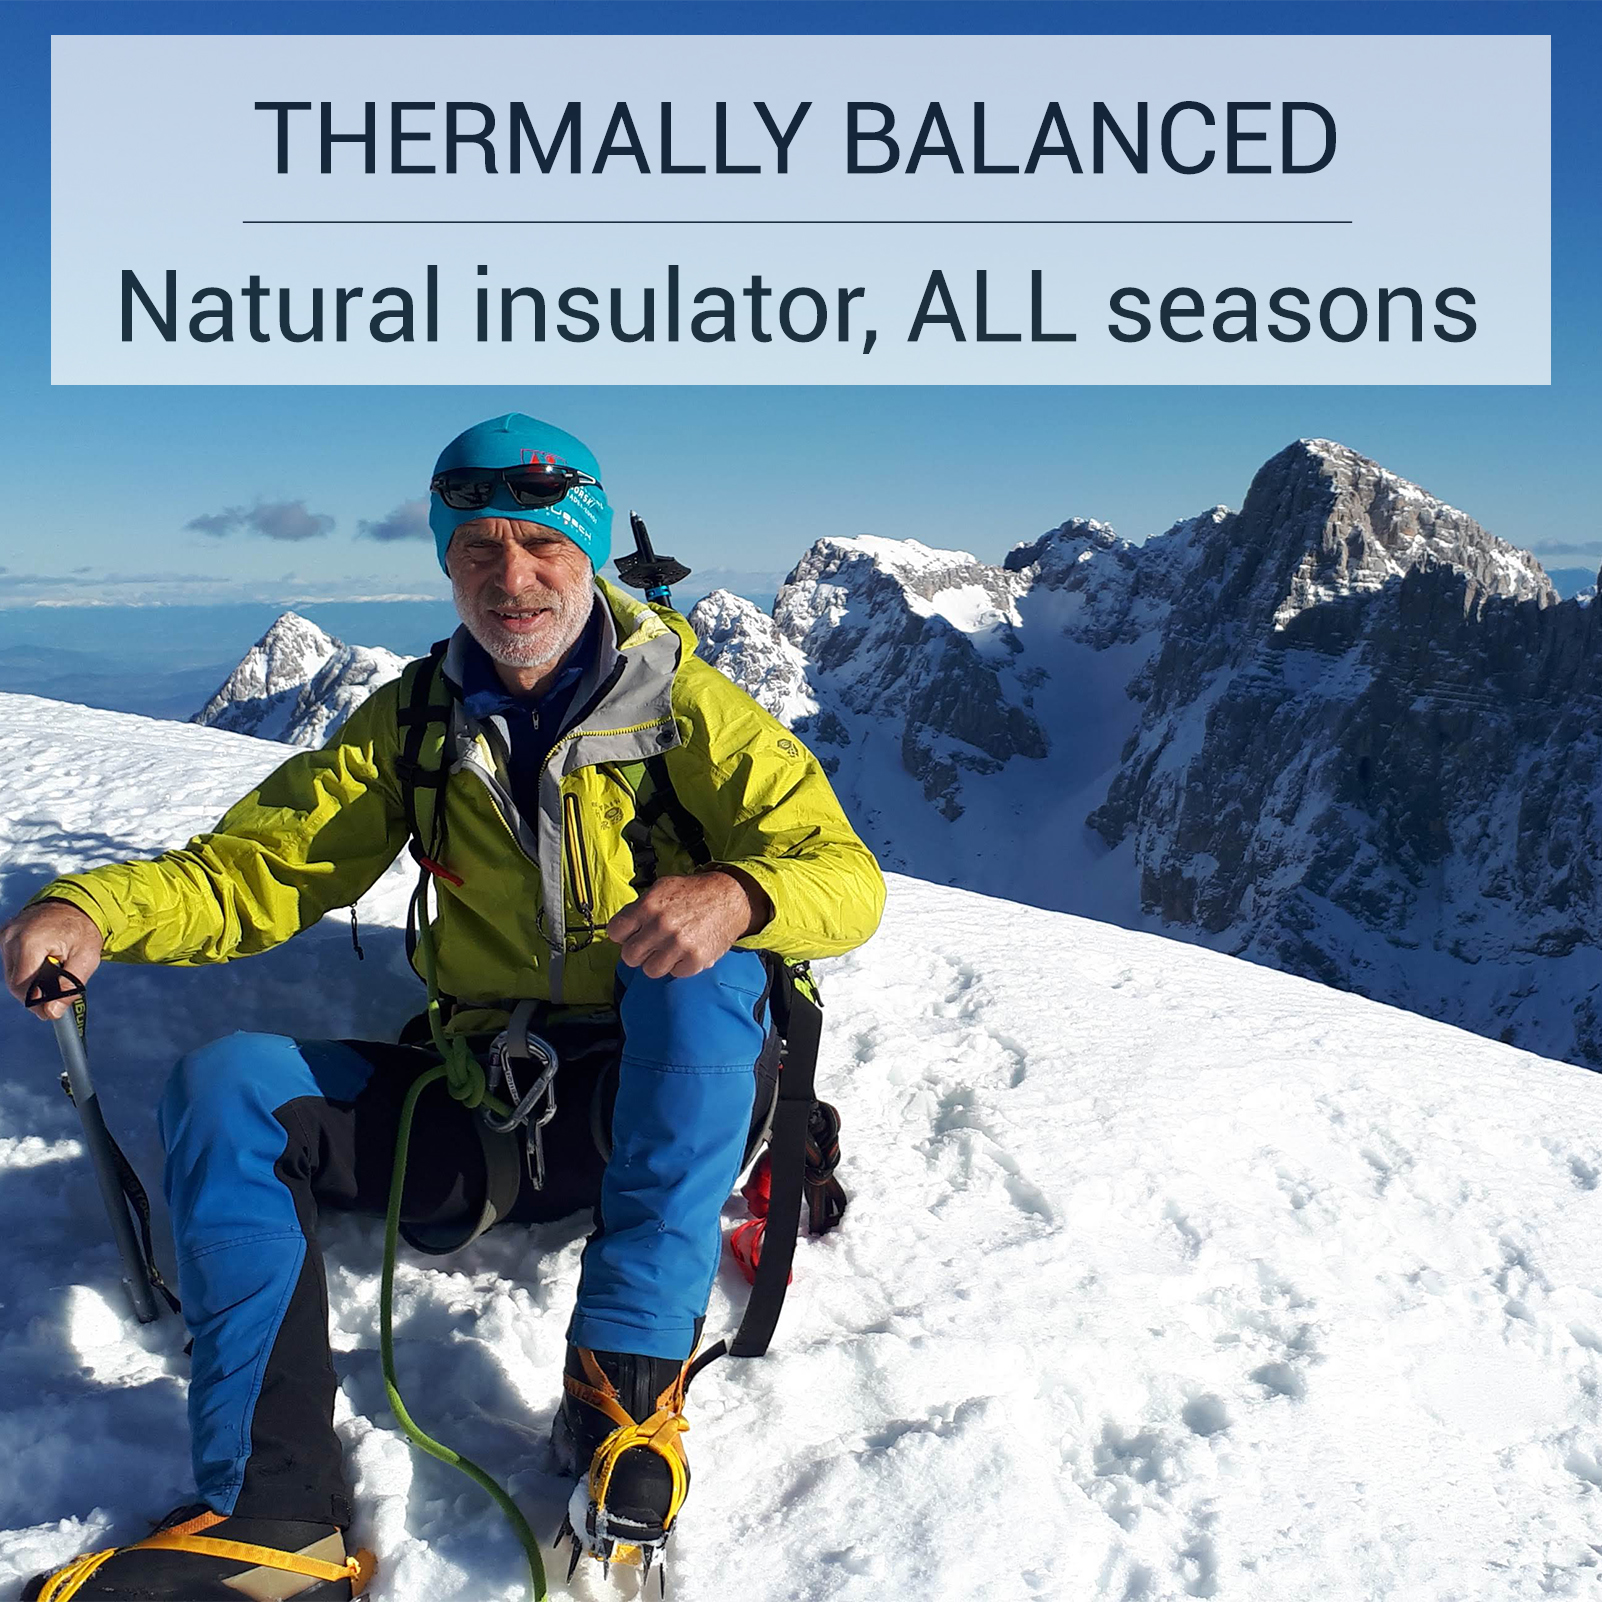 Thermally balanced Hiking